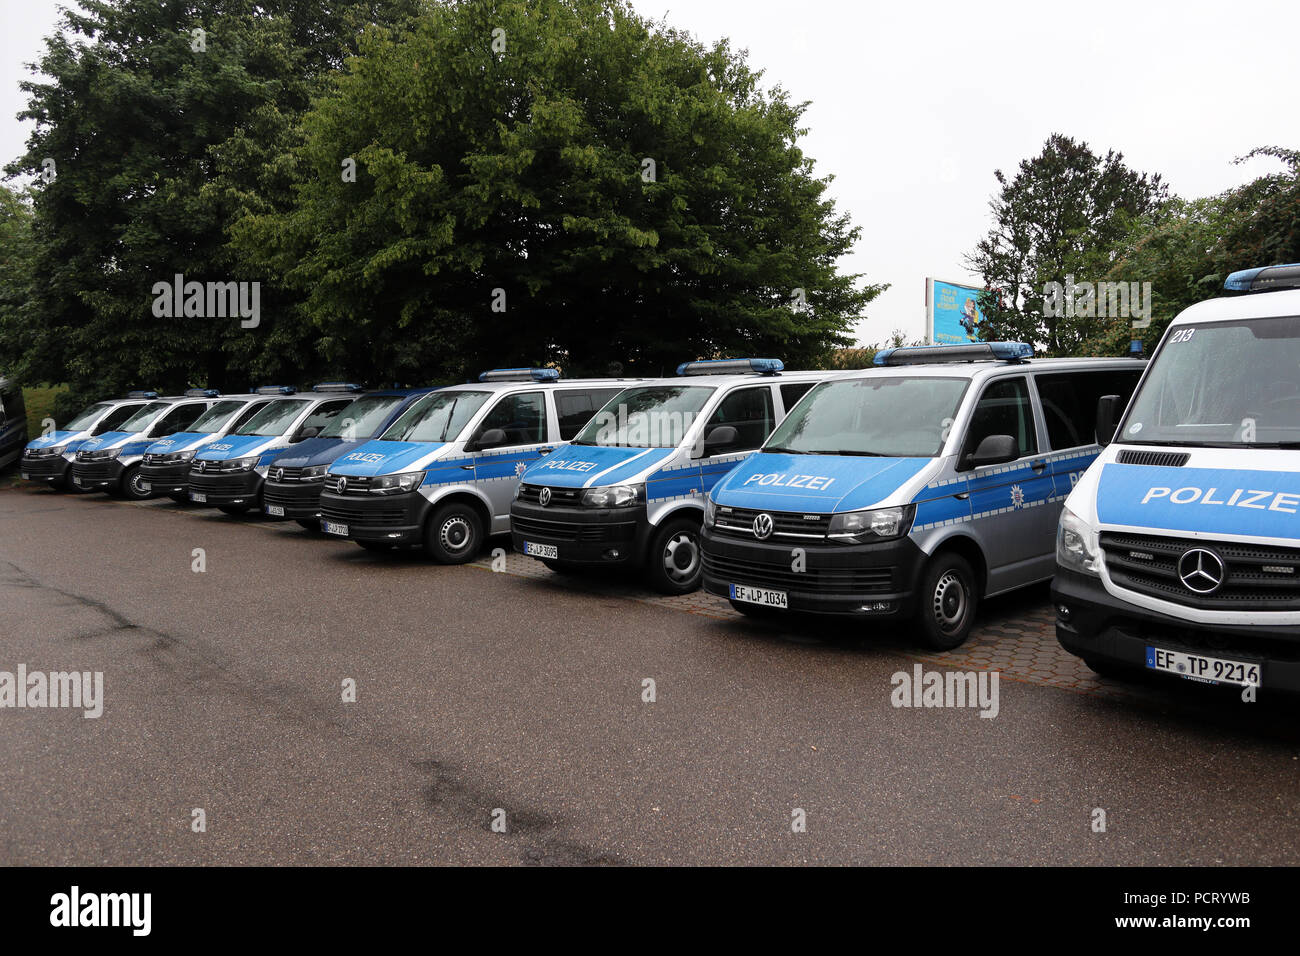 Police vehicles parked near Augsburg, Germany - Stock Image